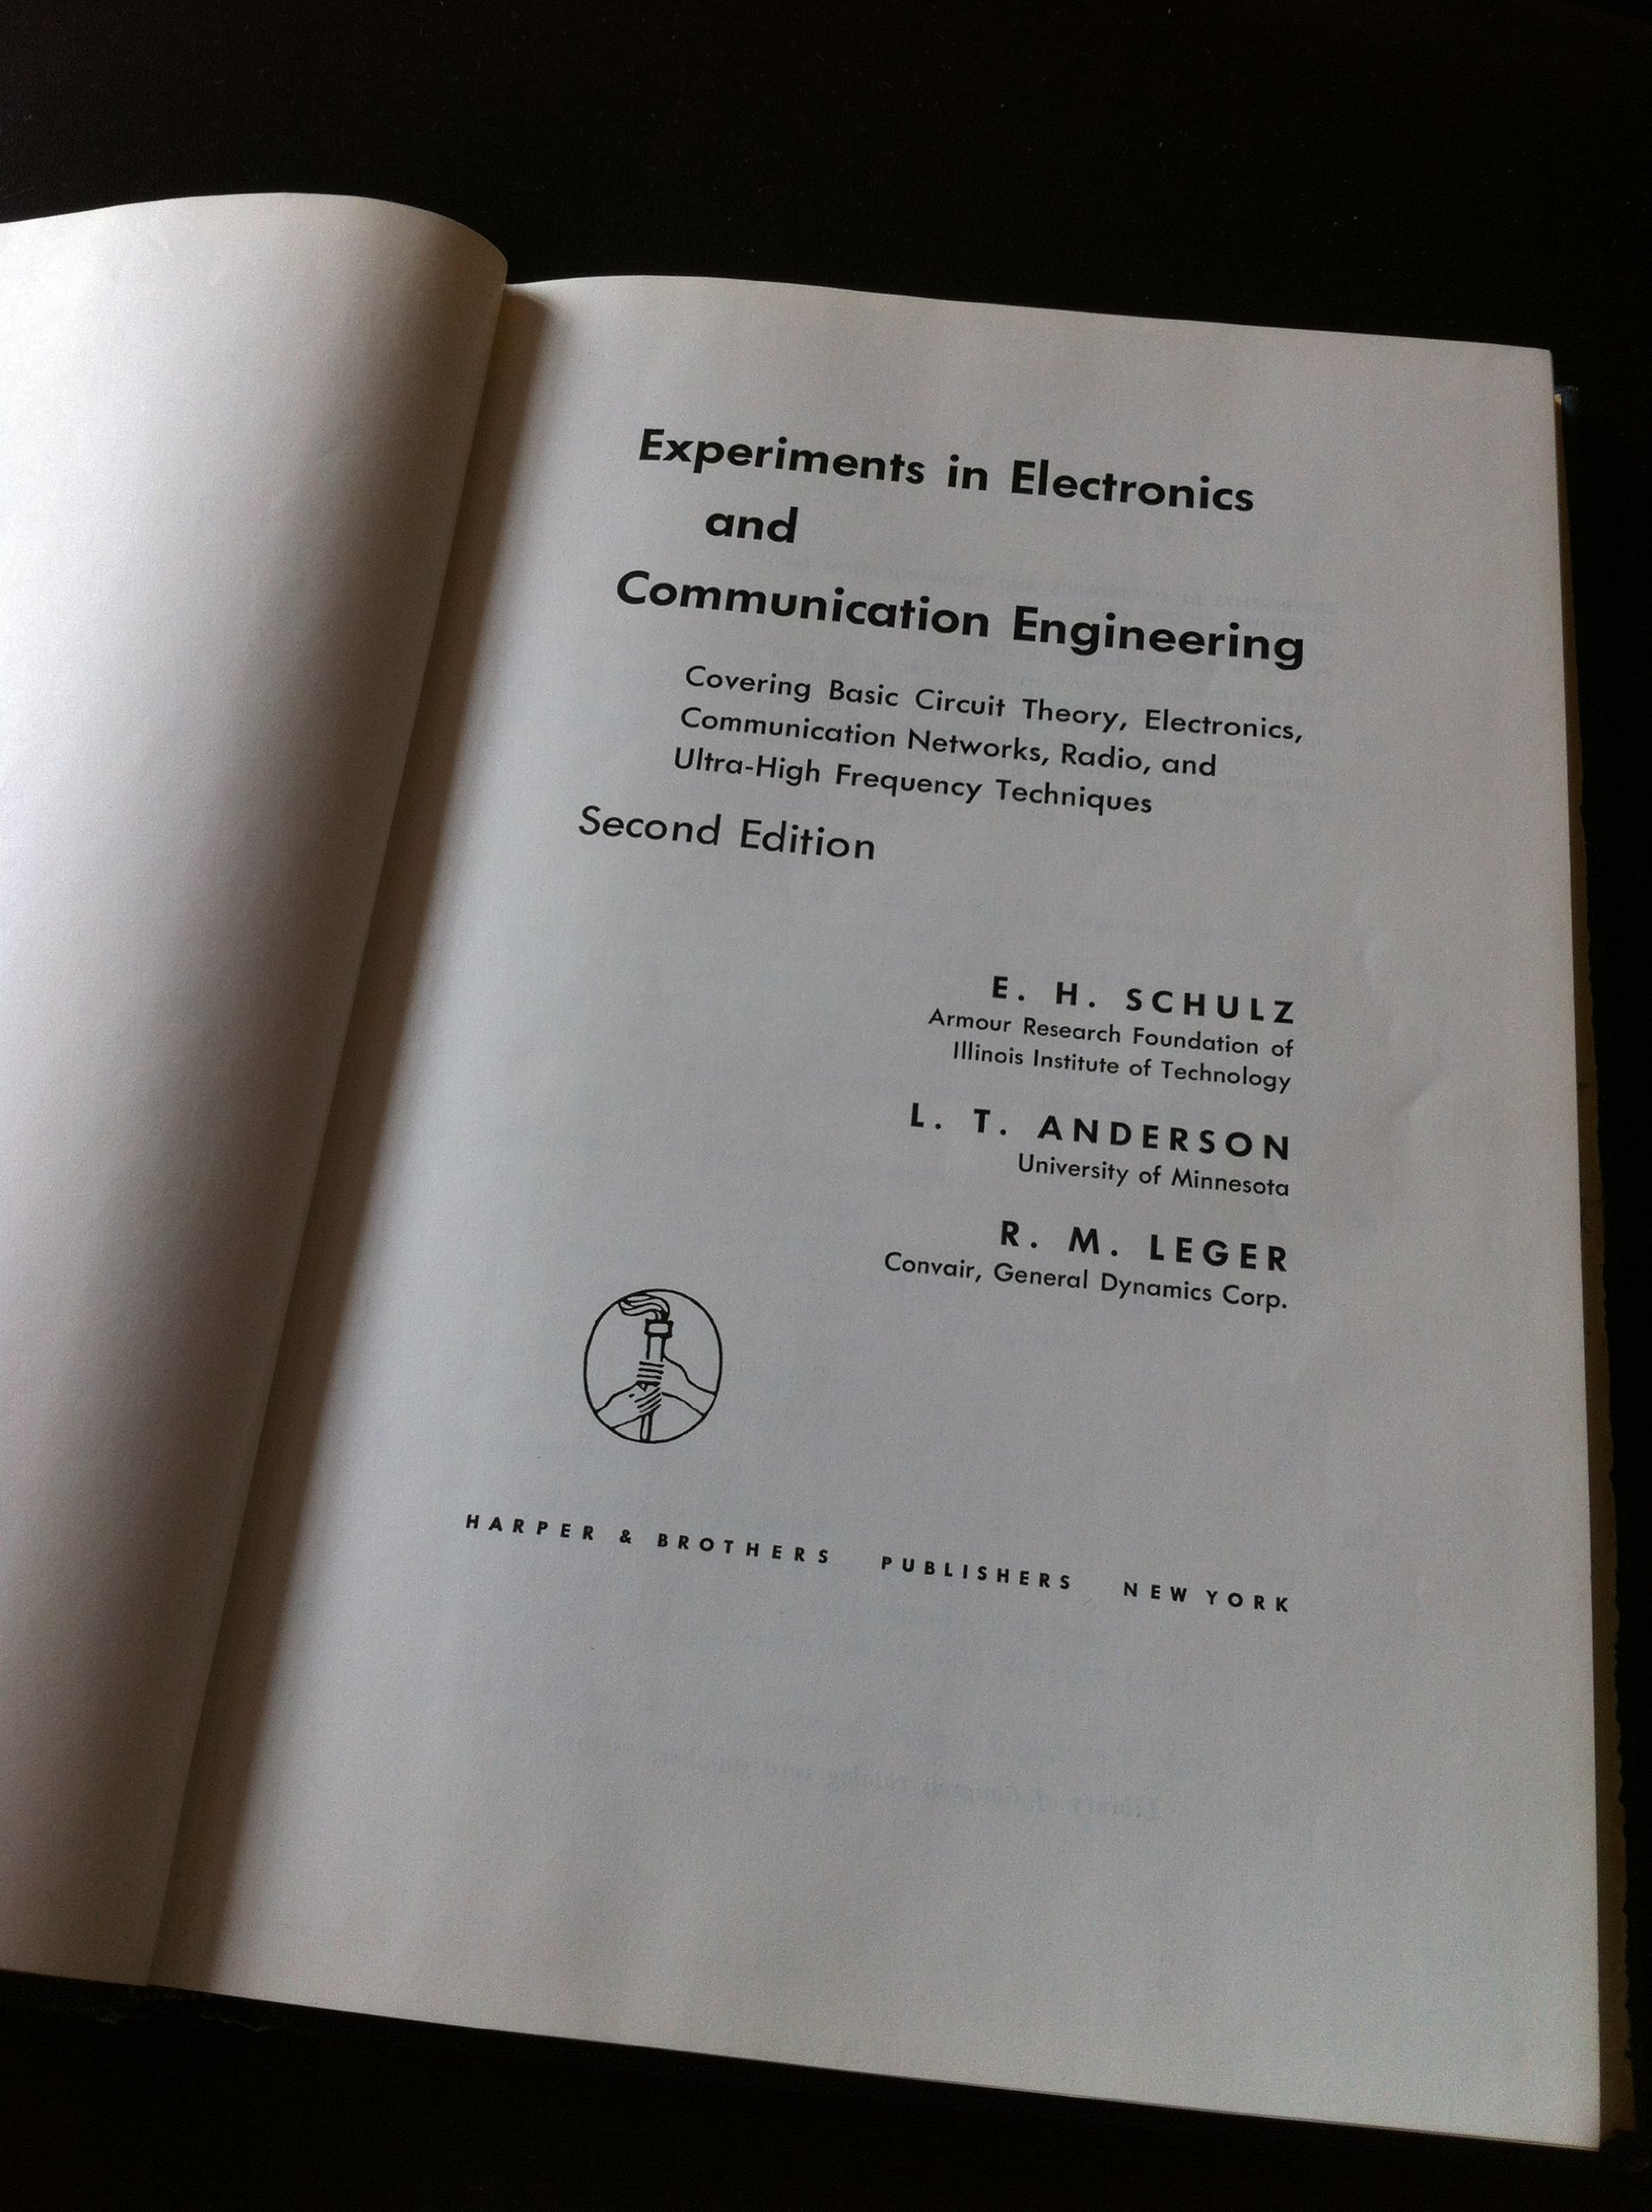 Experiments In Electronics And Communication Engineering Covering Radio Circuit Electronic Design Basic Theory Networks Ultra High